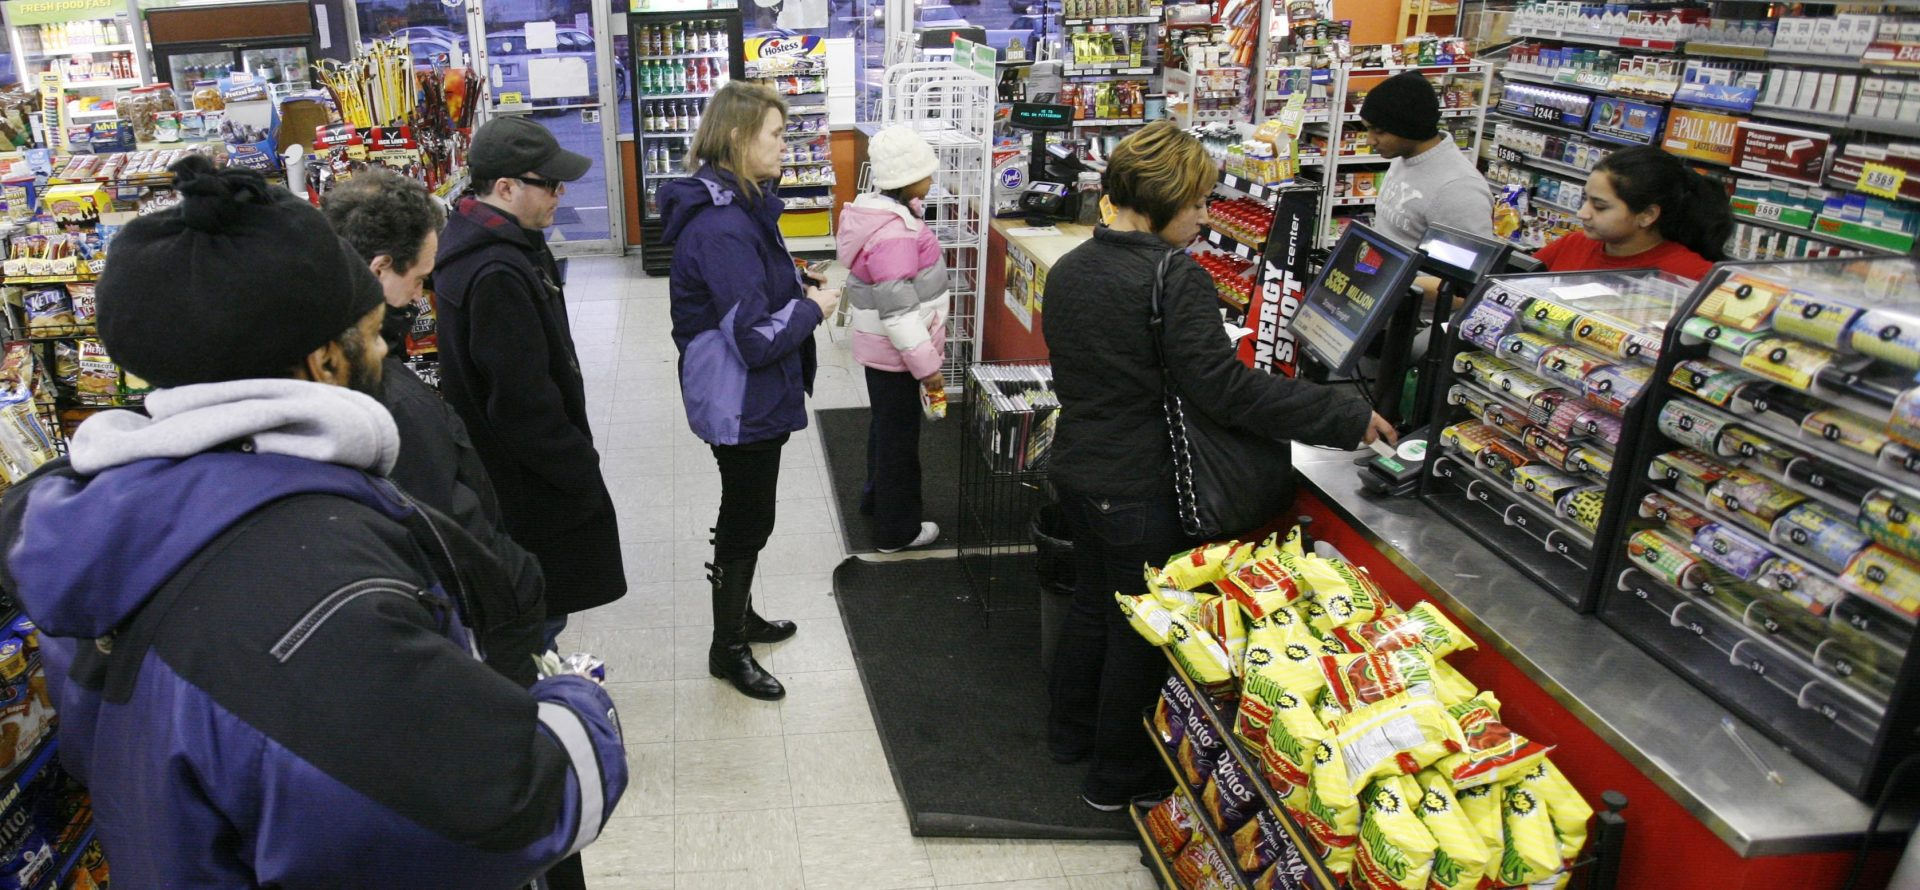 Truck stop or convenience store? The answer will affect Pa 's